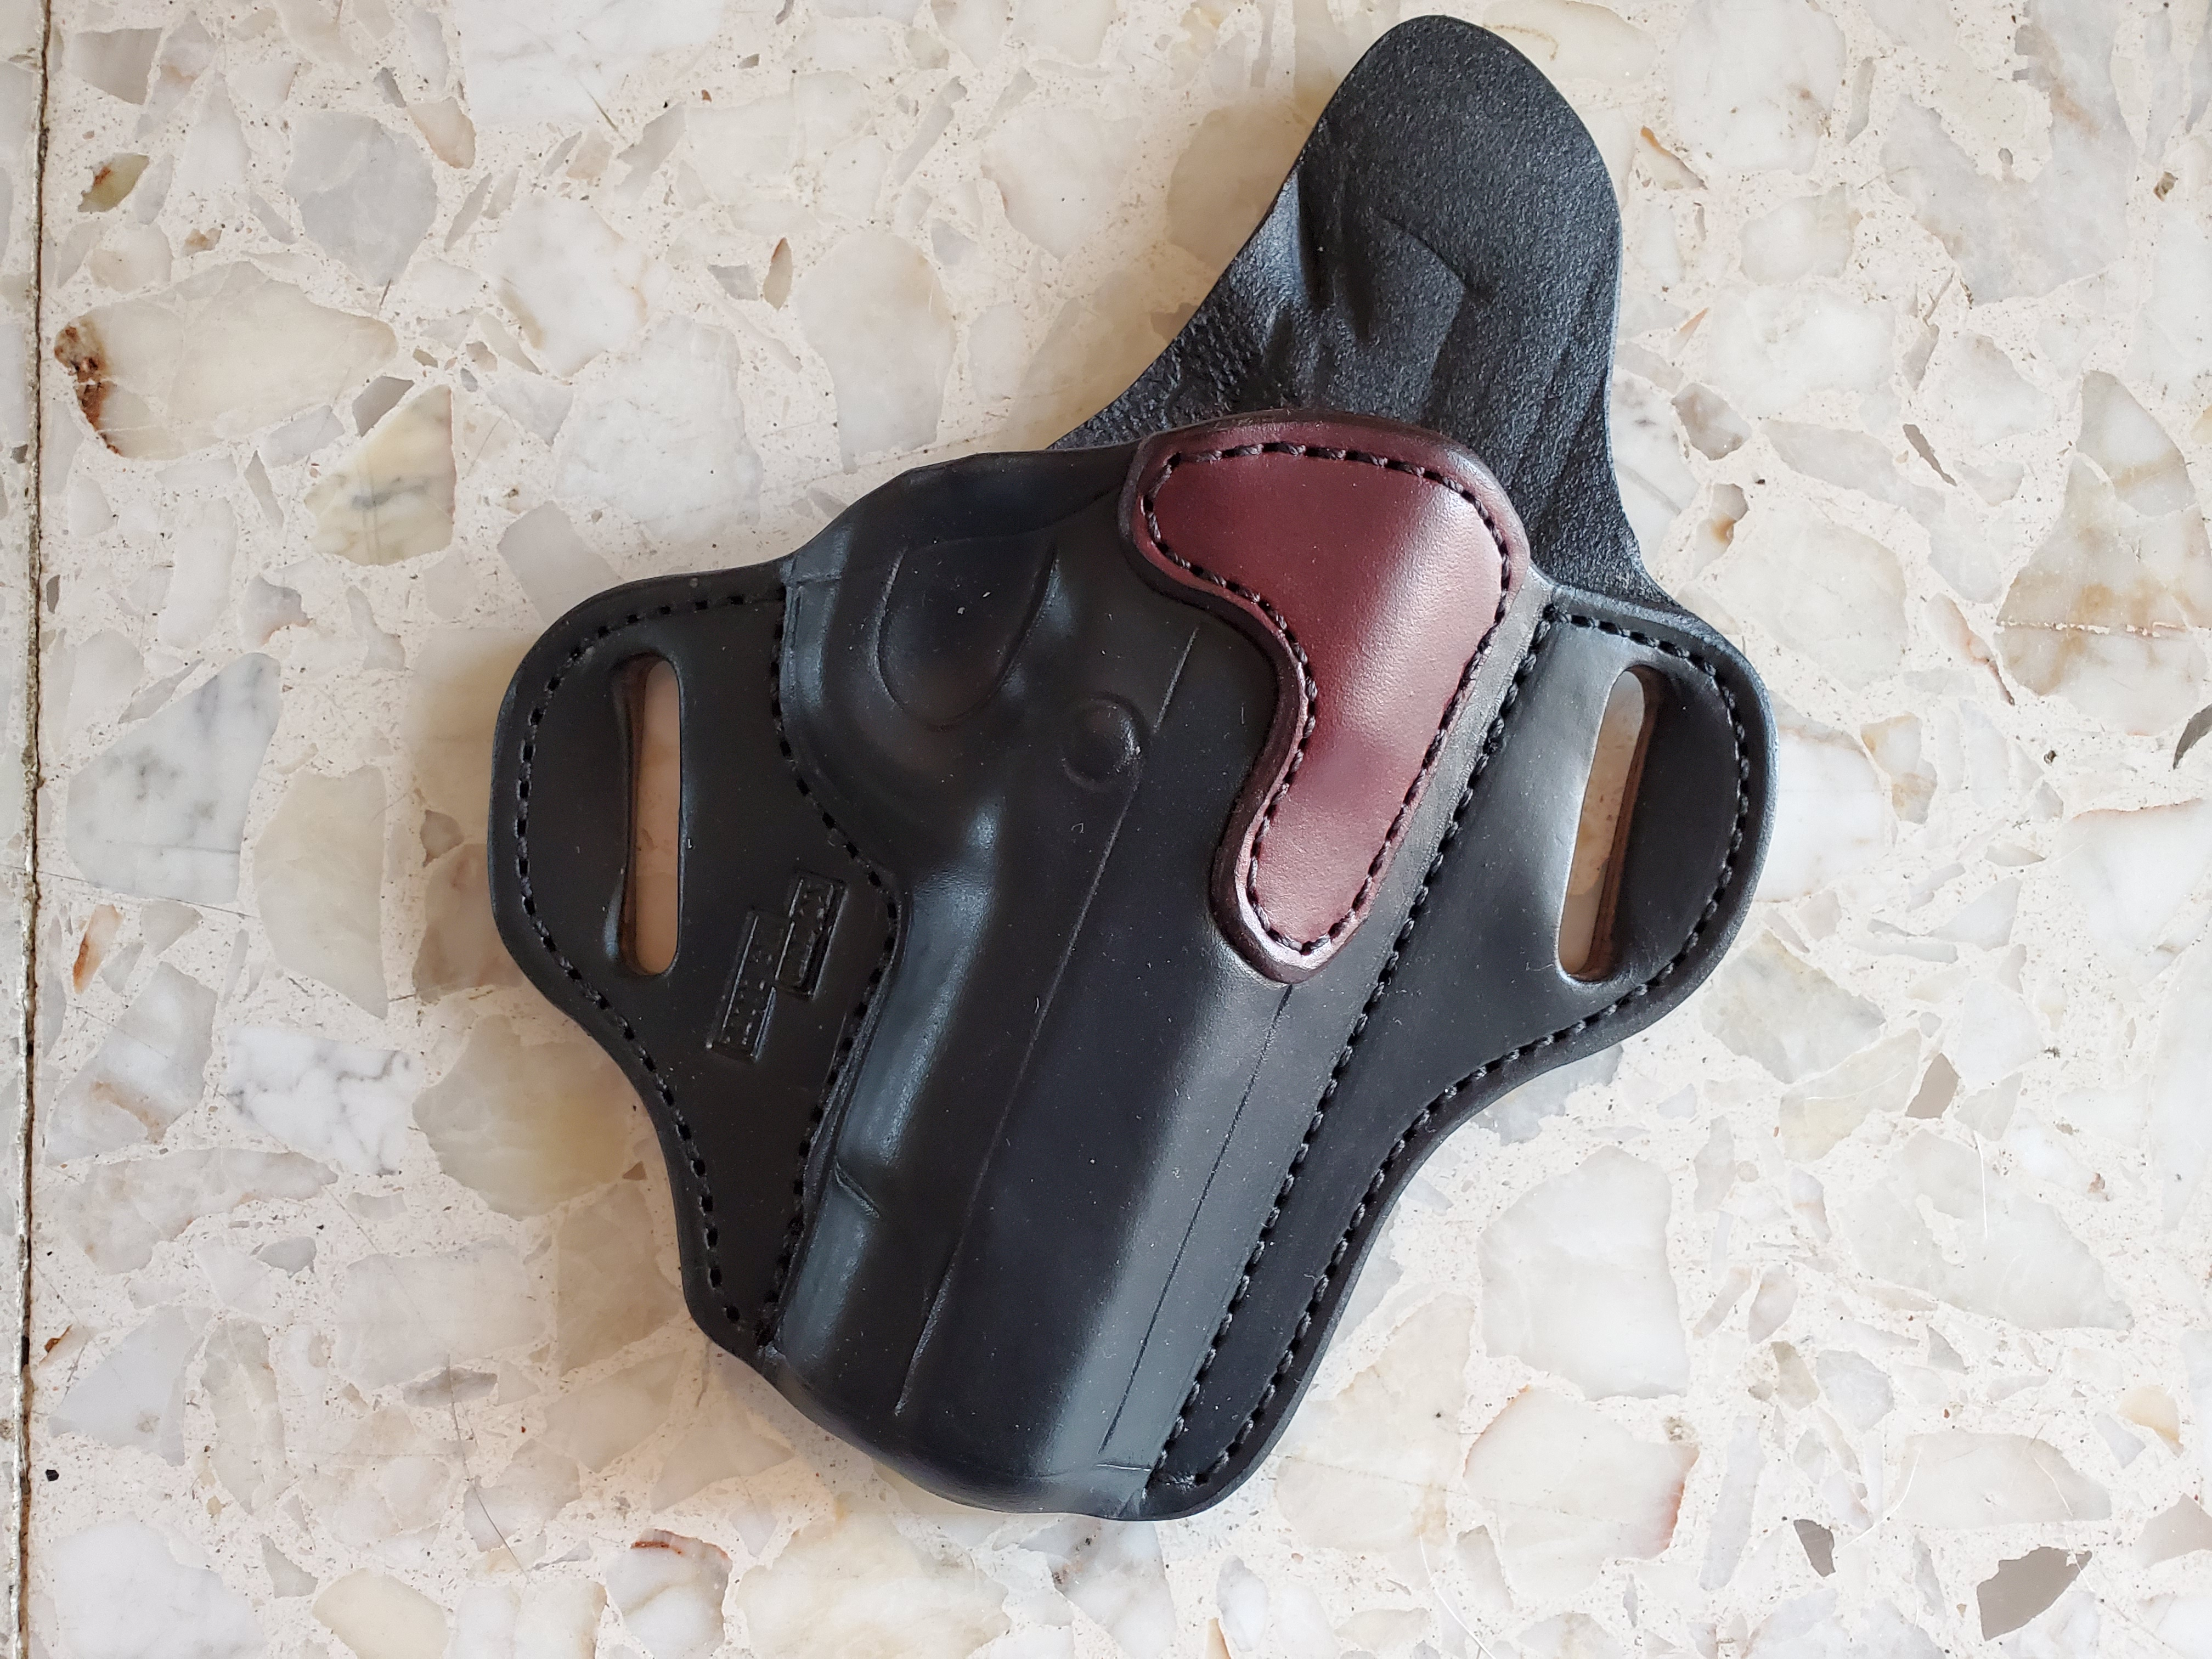 Selling New Nelson Holsters- 10% off Retail and No Wait-20190508_170707.jpg